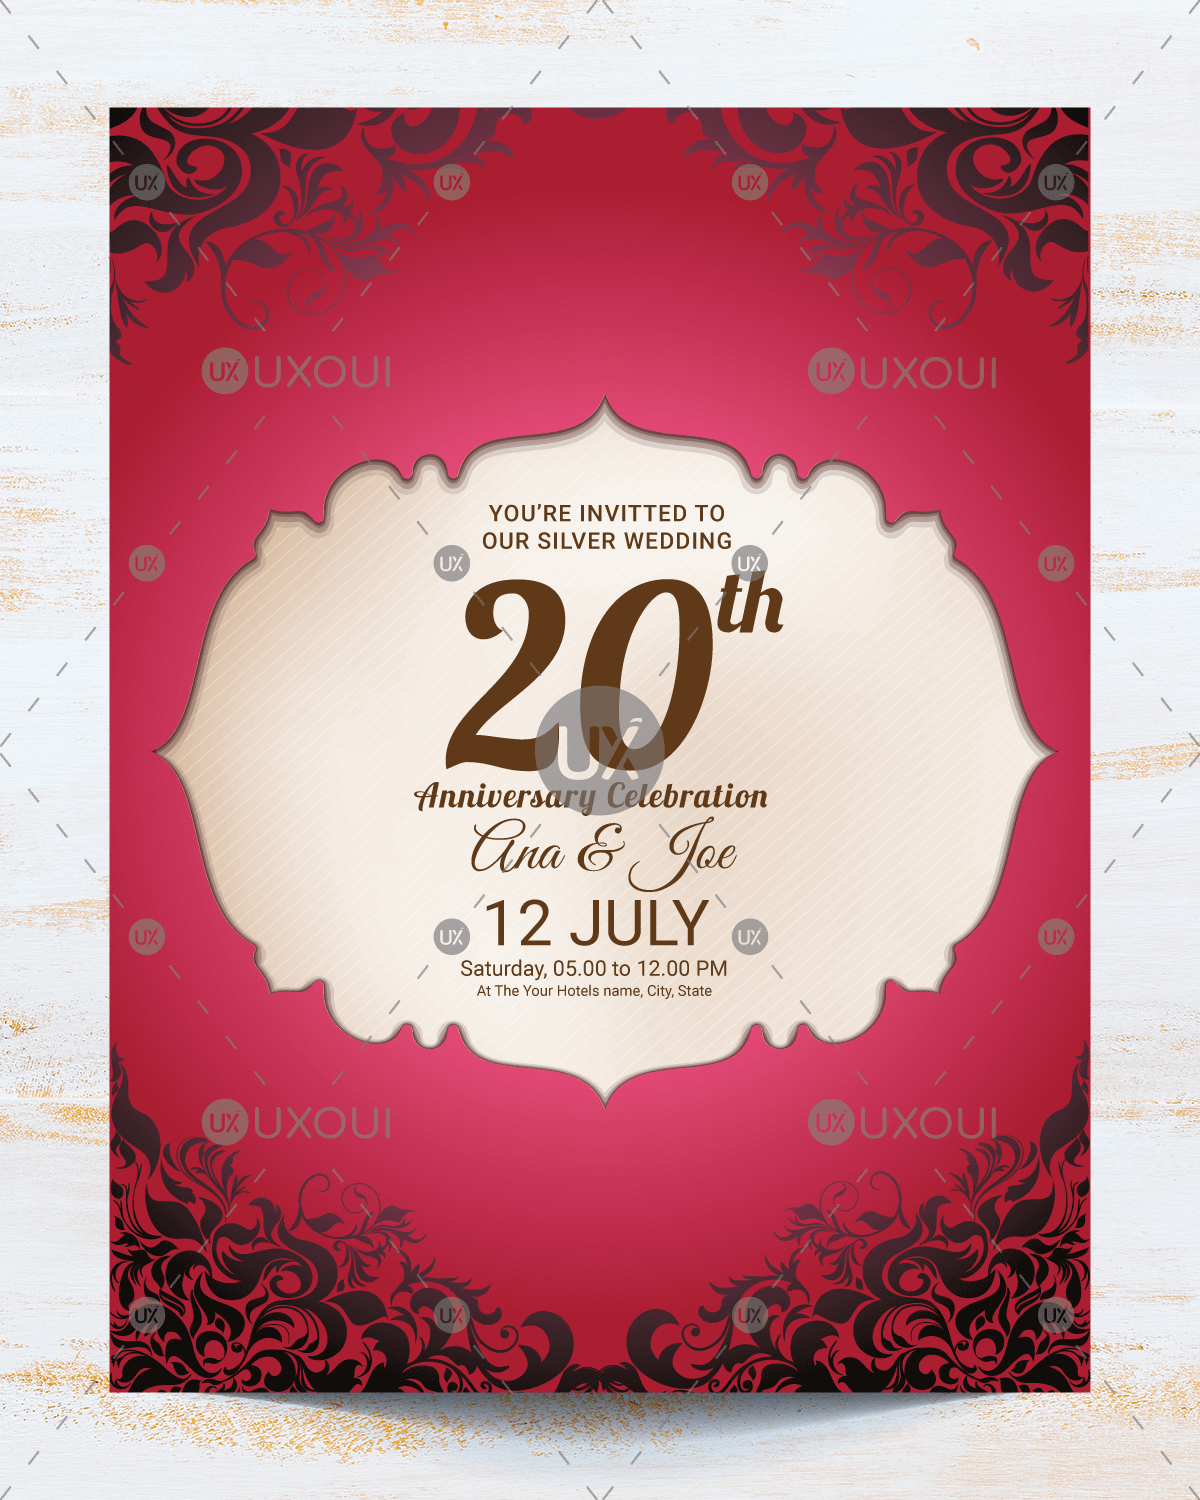 61 Visiting Invitation Card Designs Images For Free with Invitation Card Designs Images